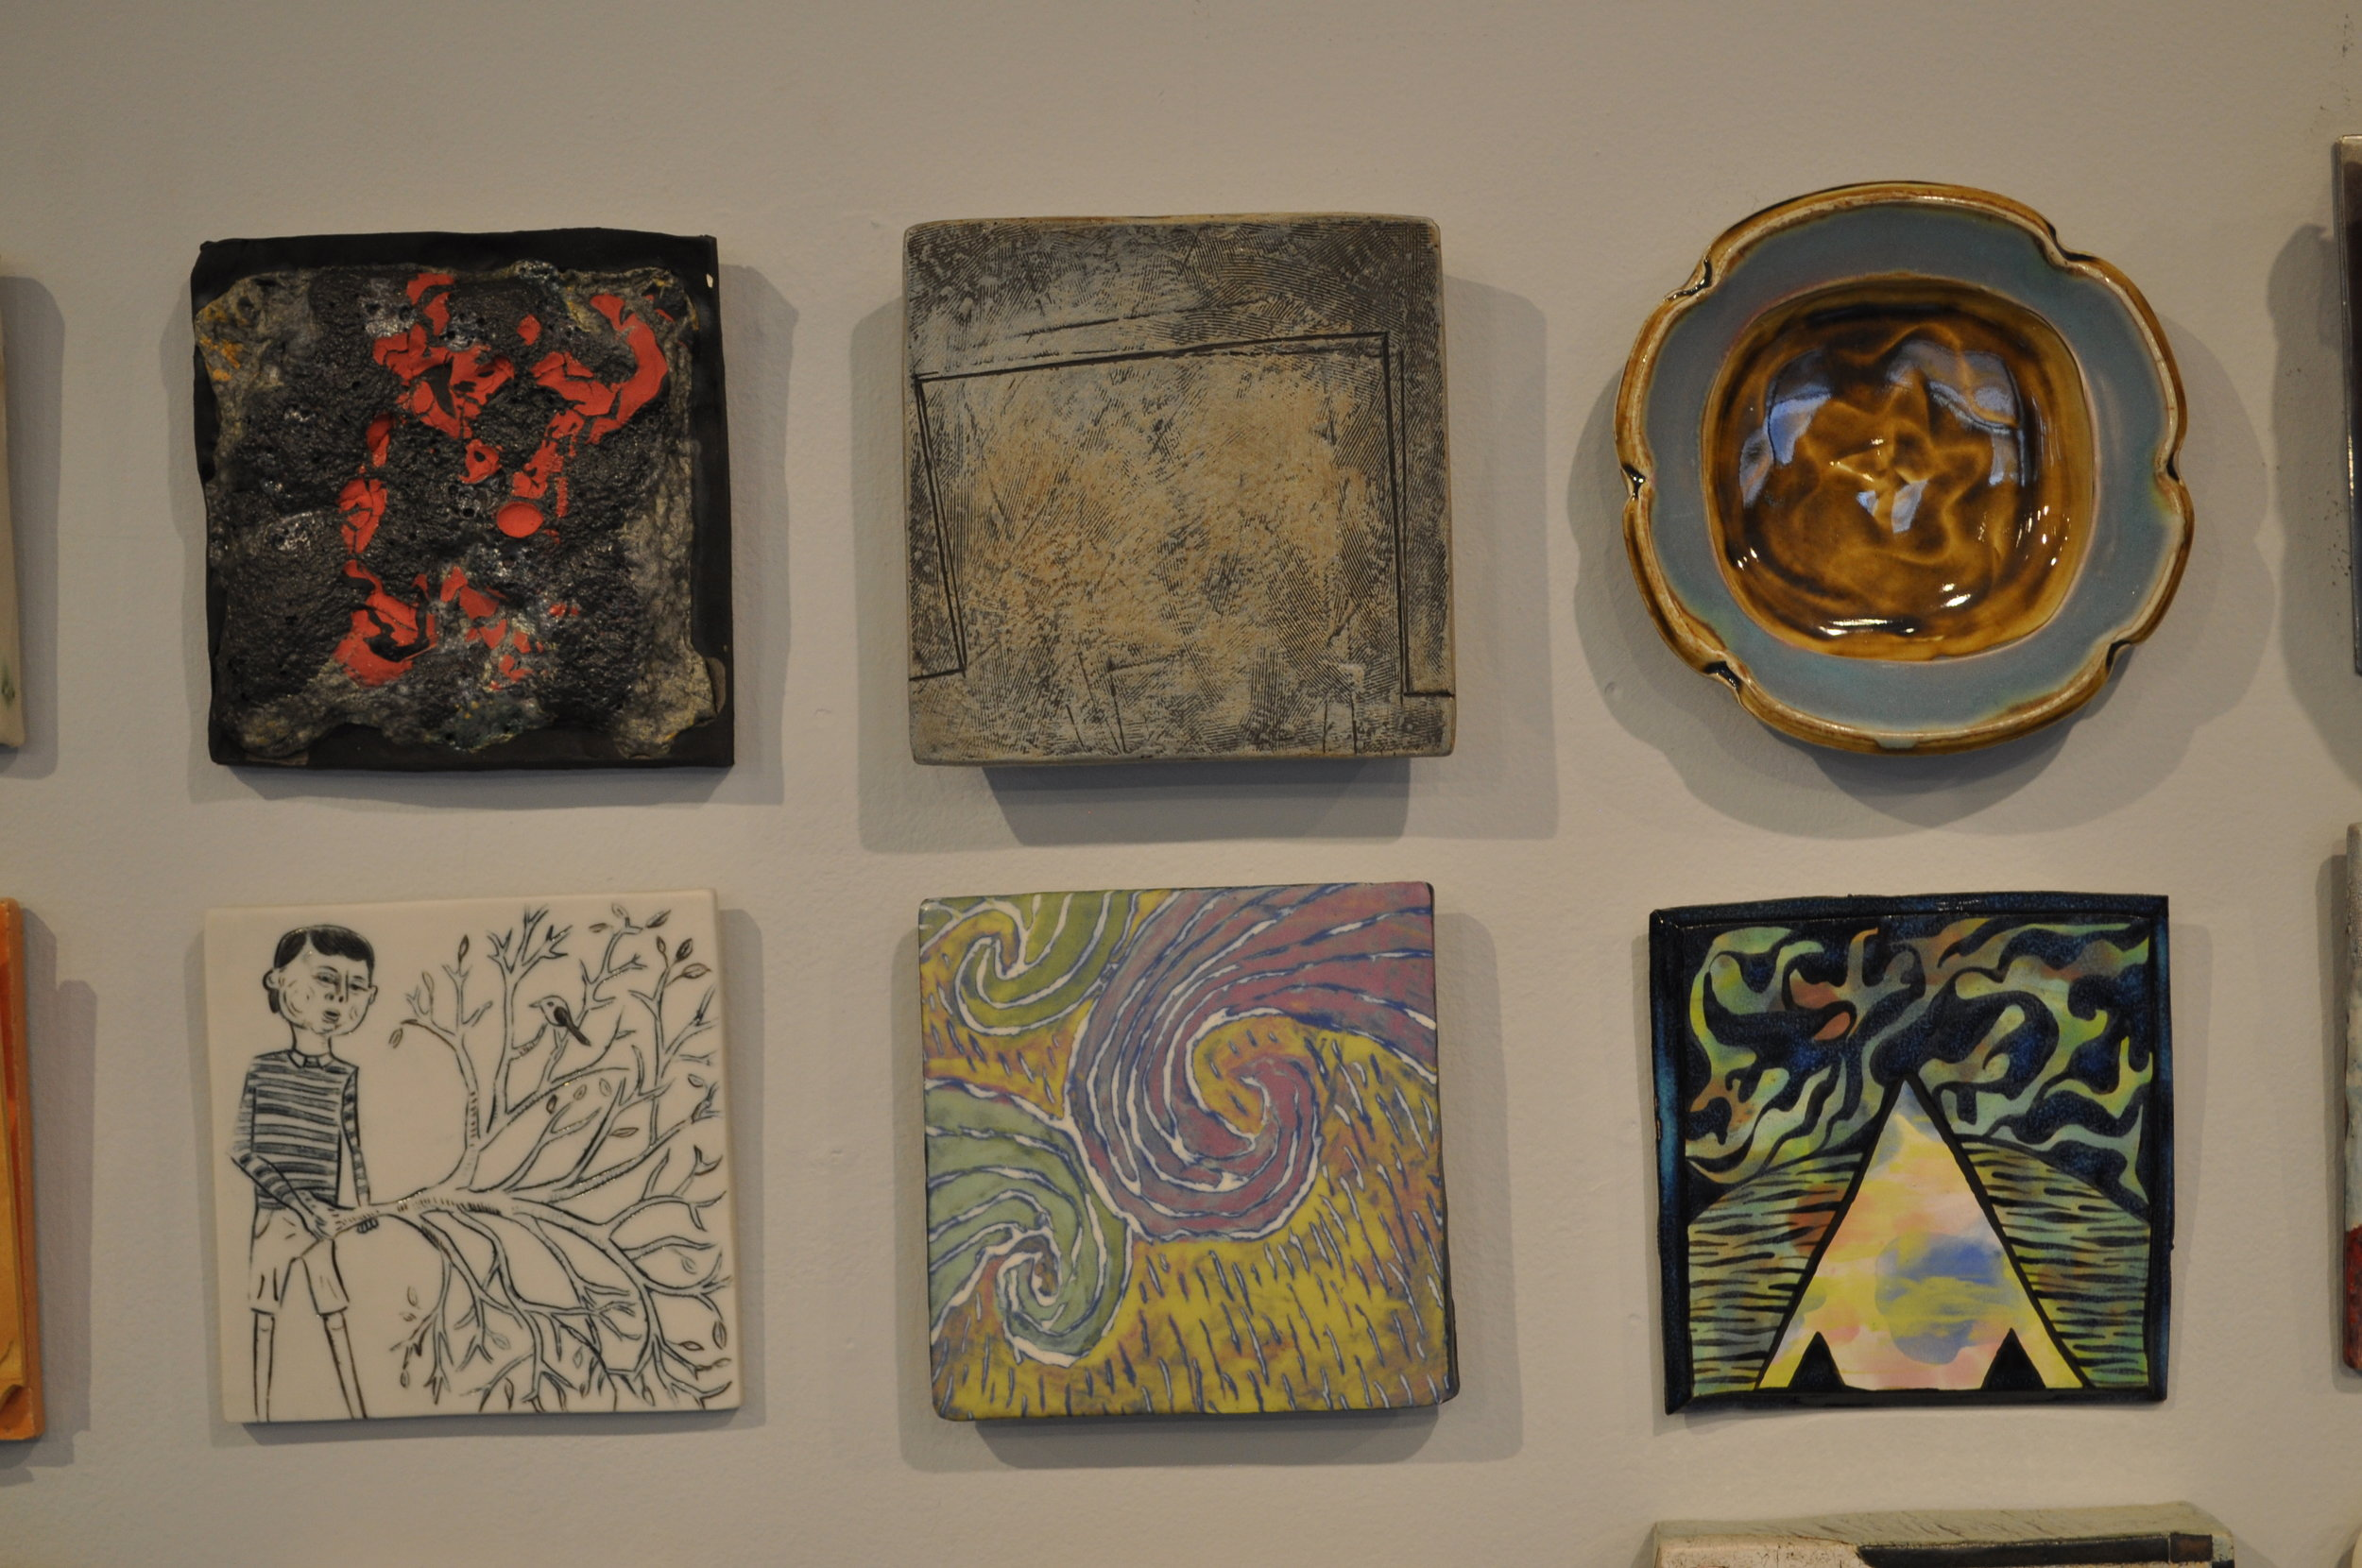 1.  John Britt,  Debris  $100  2.  Mary Barringer,  Tile/plate  $100  3.  Gertrude Graham Smith,  Squared Plate/Tile  $42  4. Cynthia Consentino,  Would He?  $150  5.  Lana Wilson,  A Bed Of Chartreuse  $90  6.  Kelley Donahue,  Birth of a Merkaba  $100